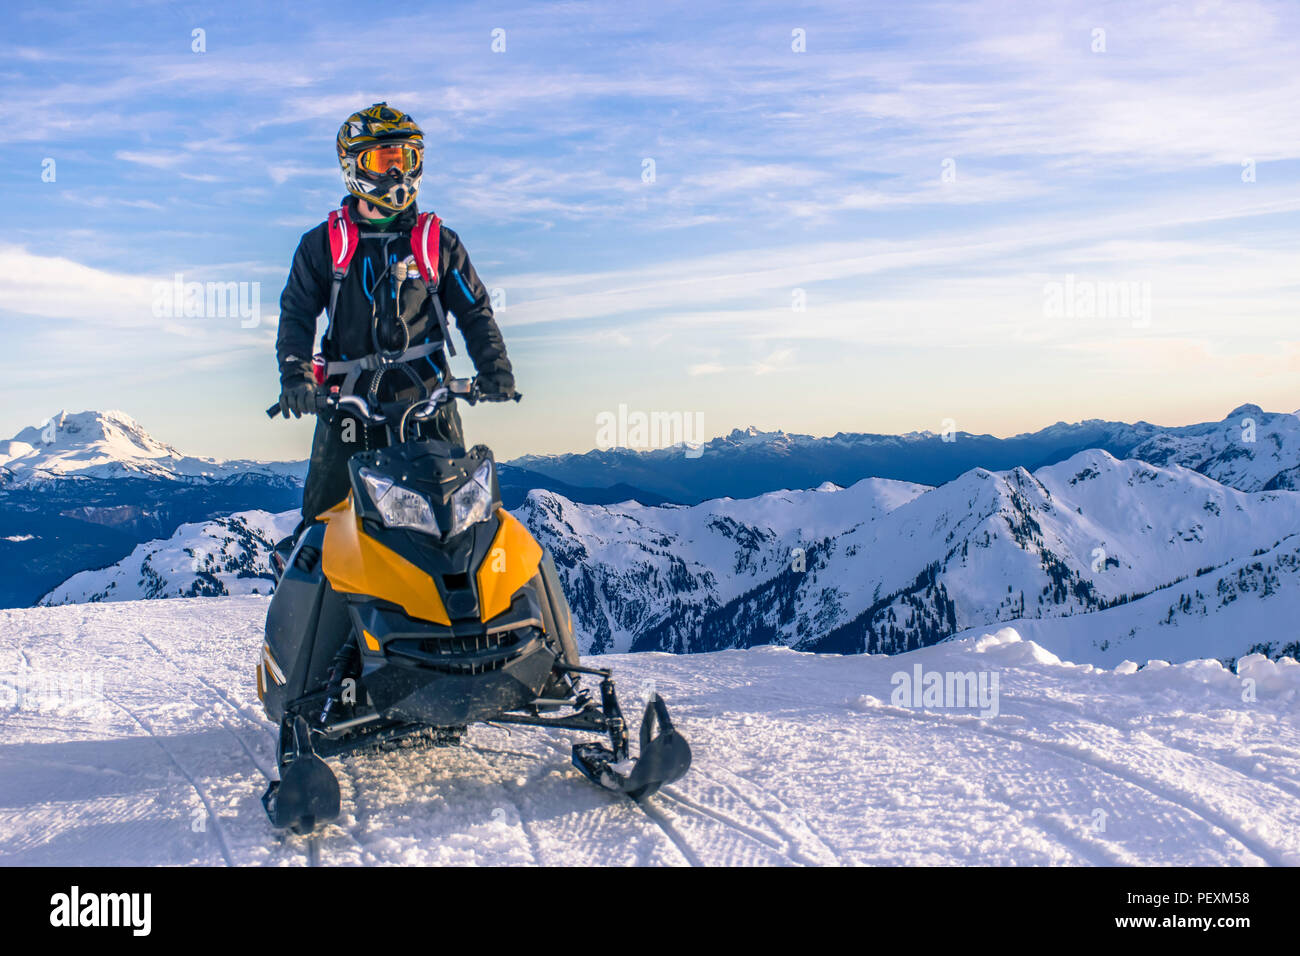 Man on snowmobile, Whistler, British Columbia, Canada - Stock Image